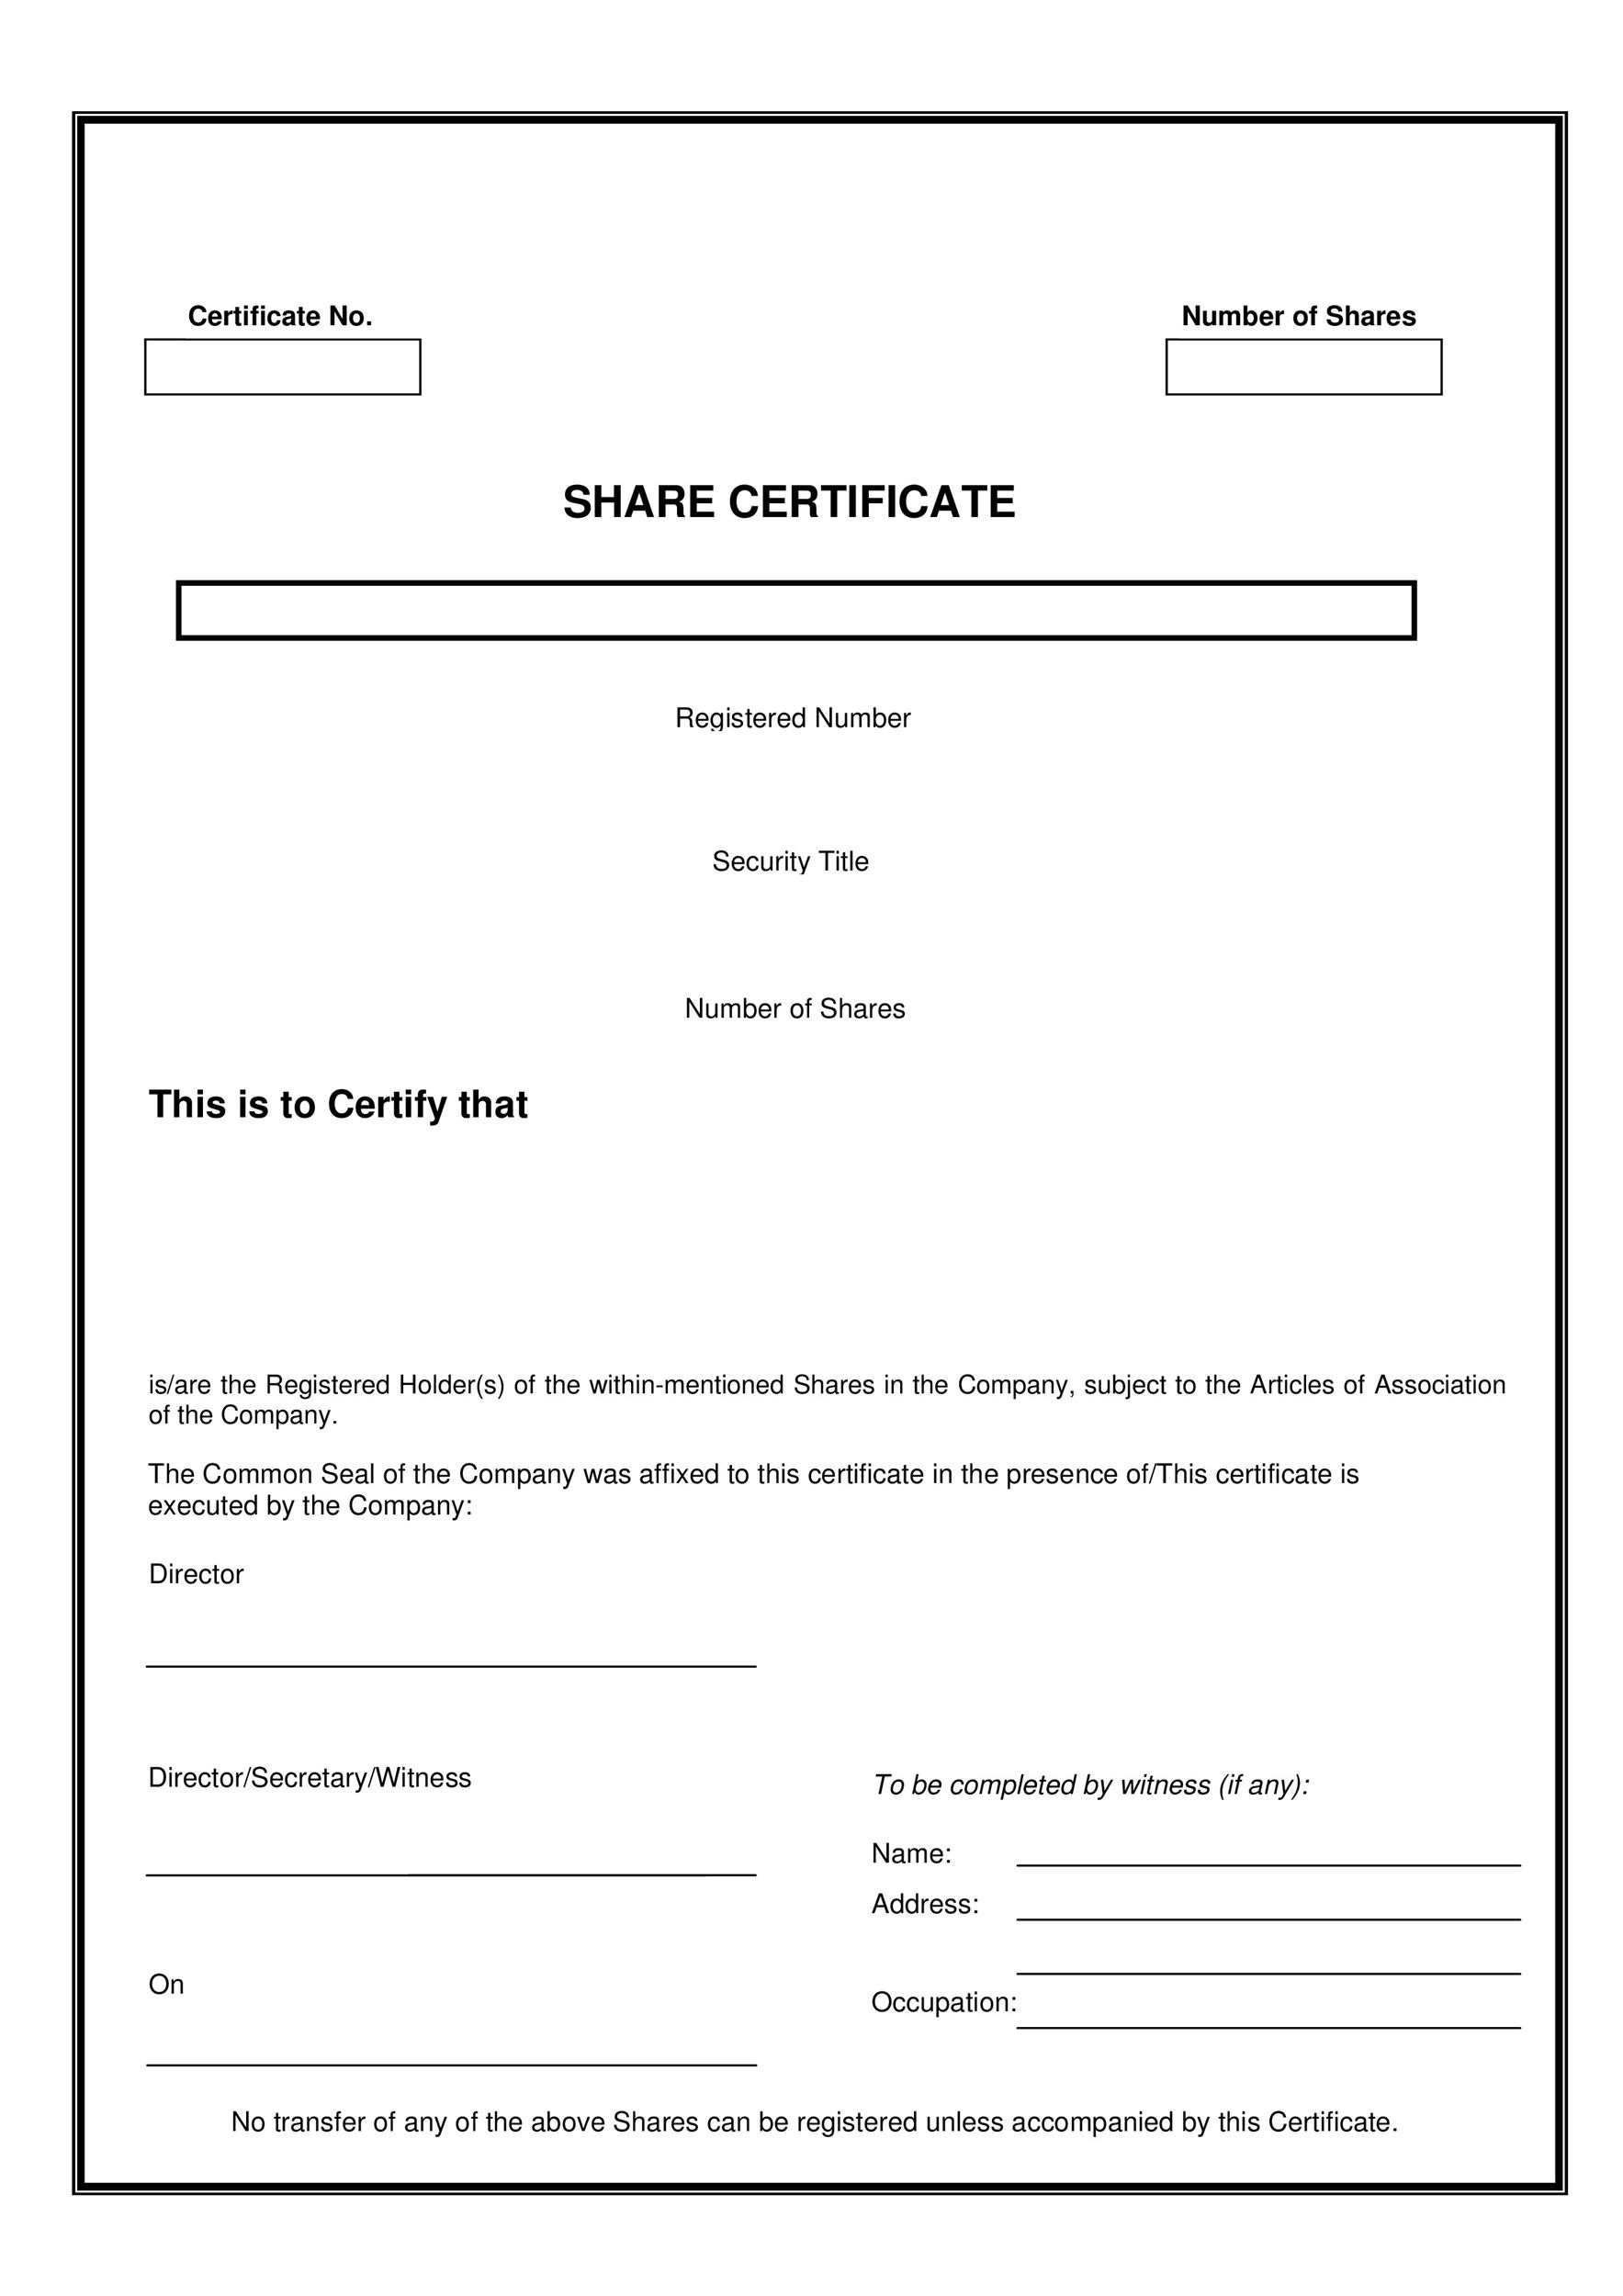 40 free stock certificate templates word pdf template lab free stock certificate templates yelopaper Image collections